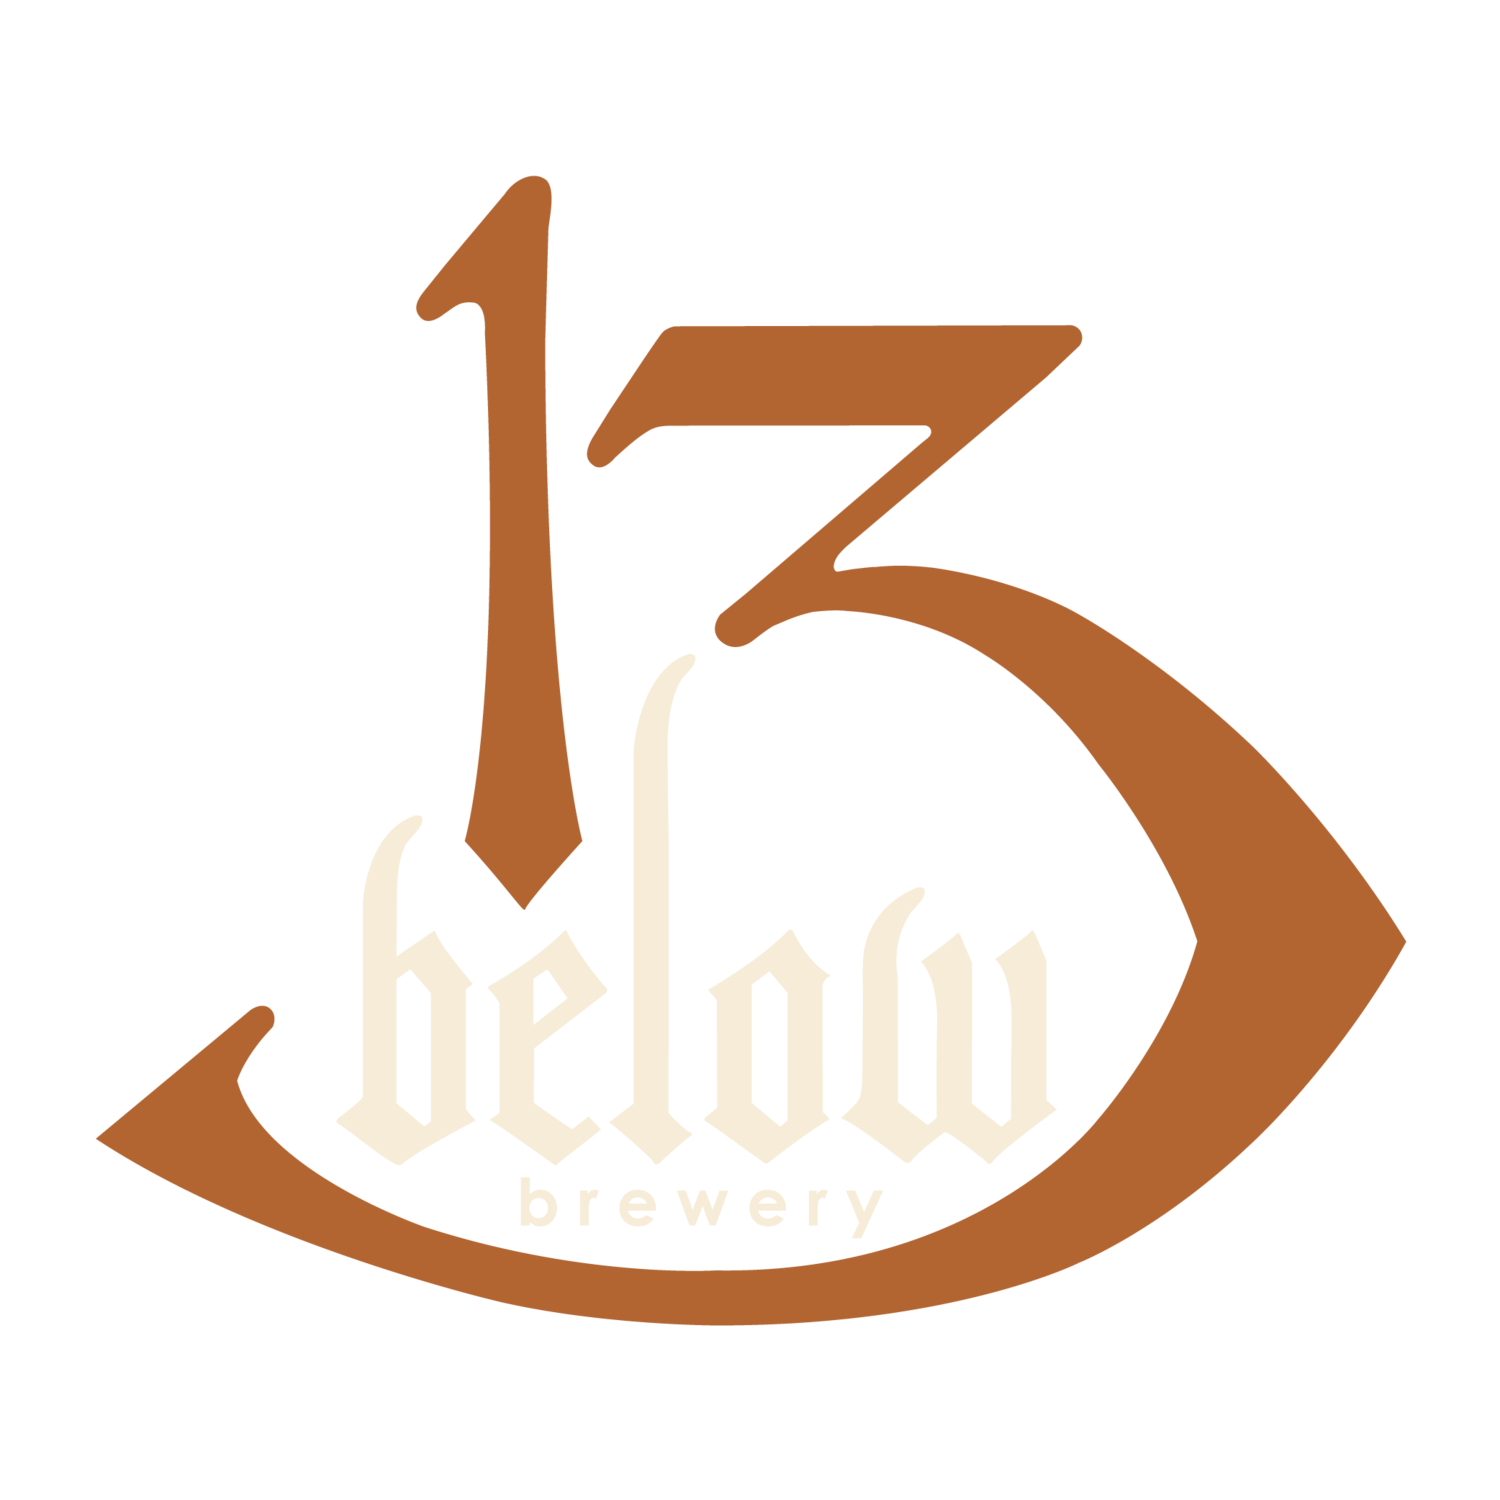 13 Below Brewery